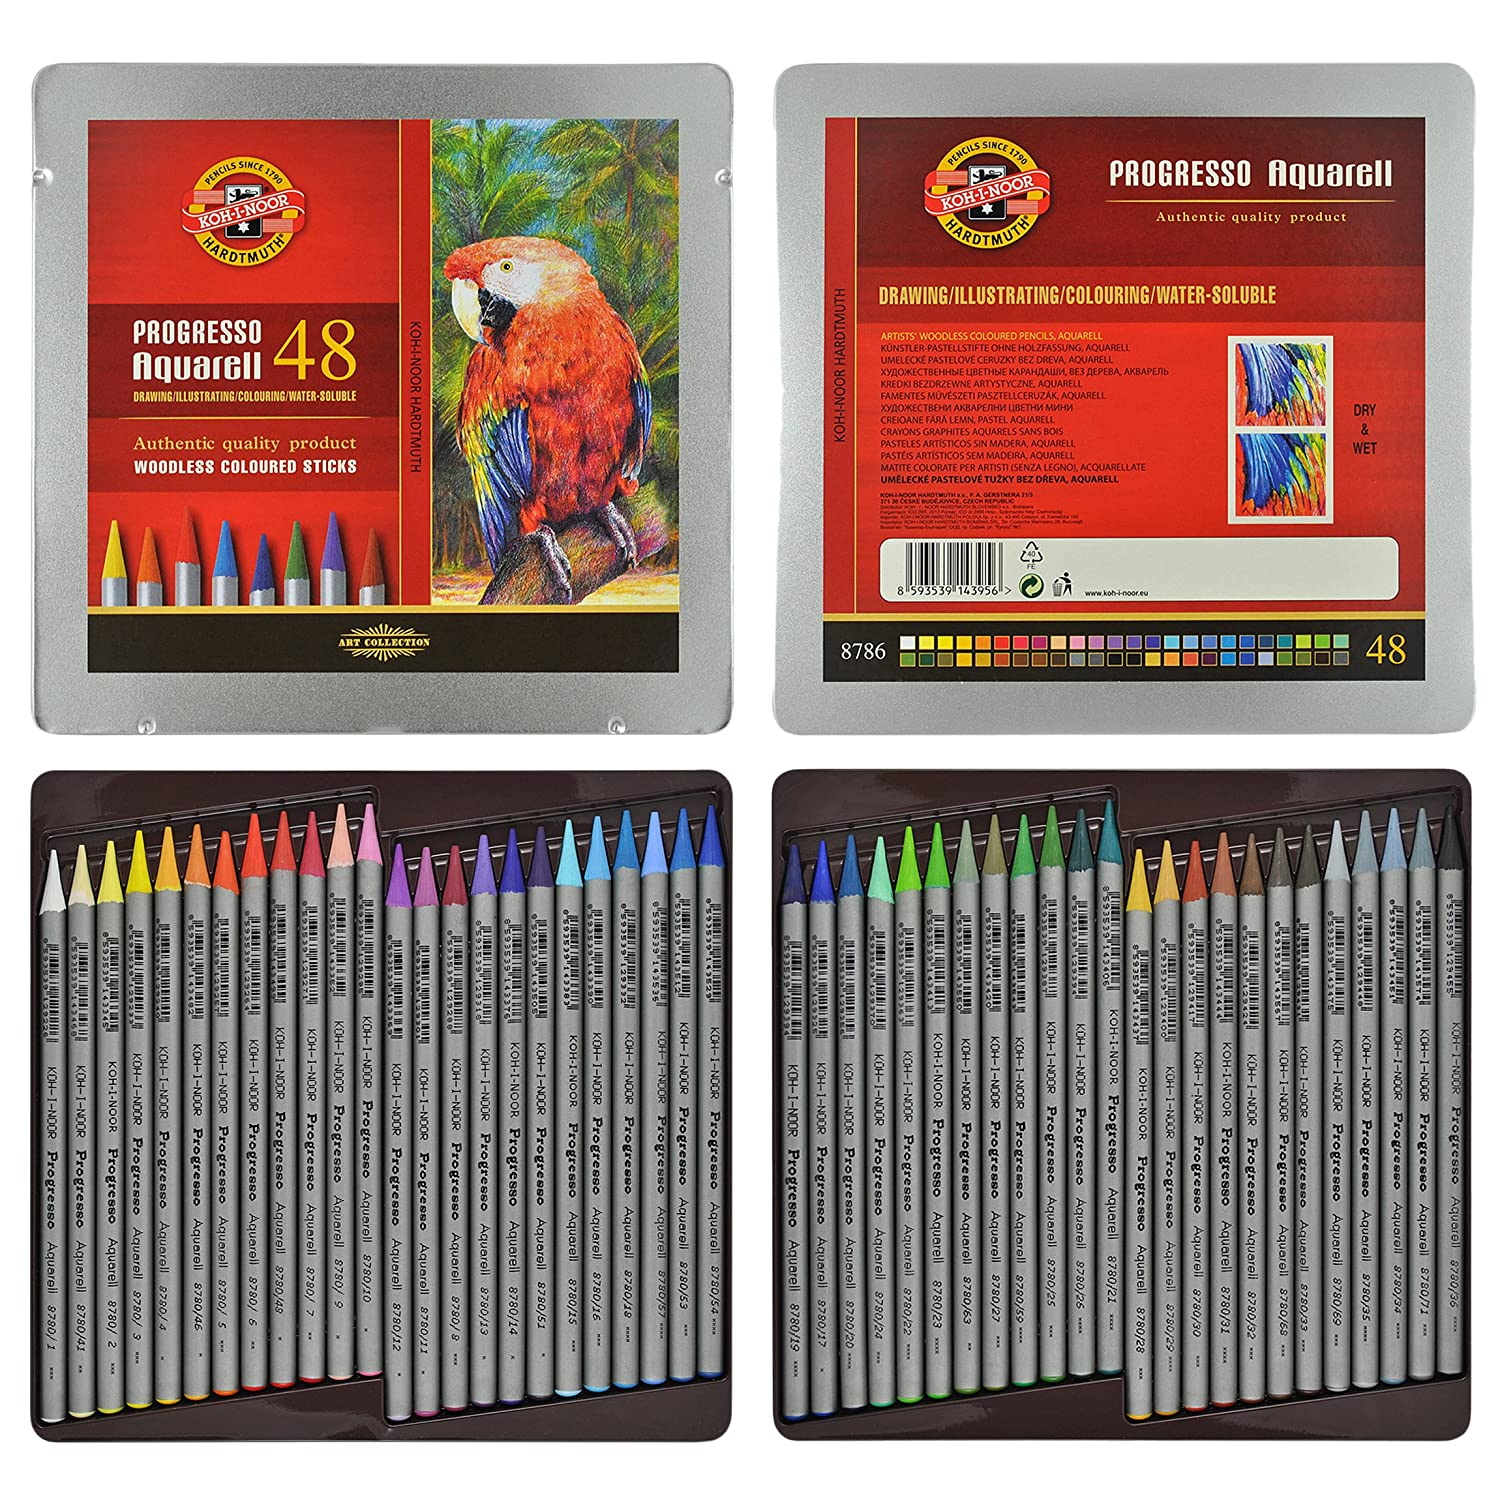 Pencils KOH-I-NOOR - products of excellent quality